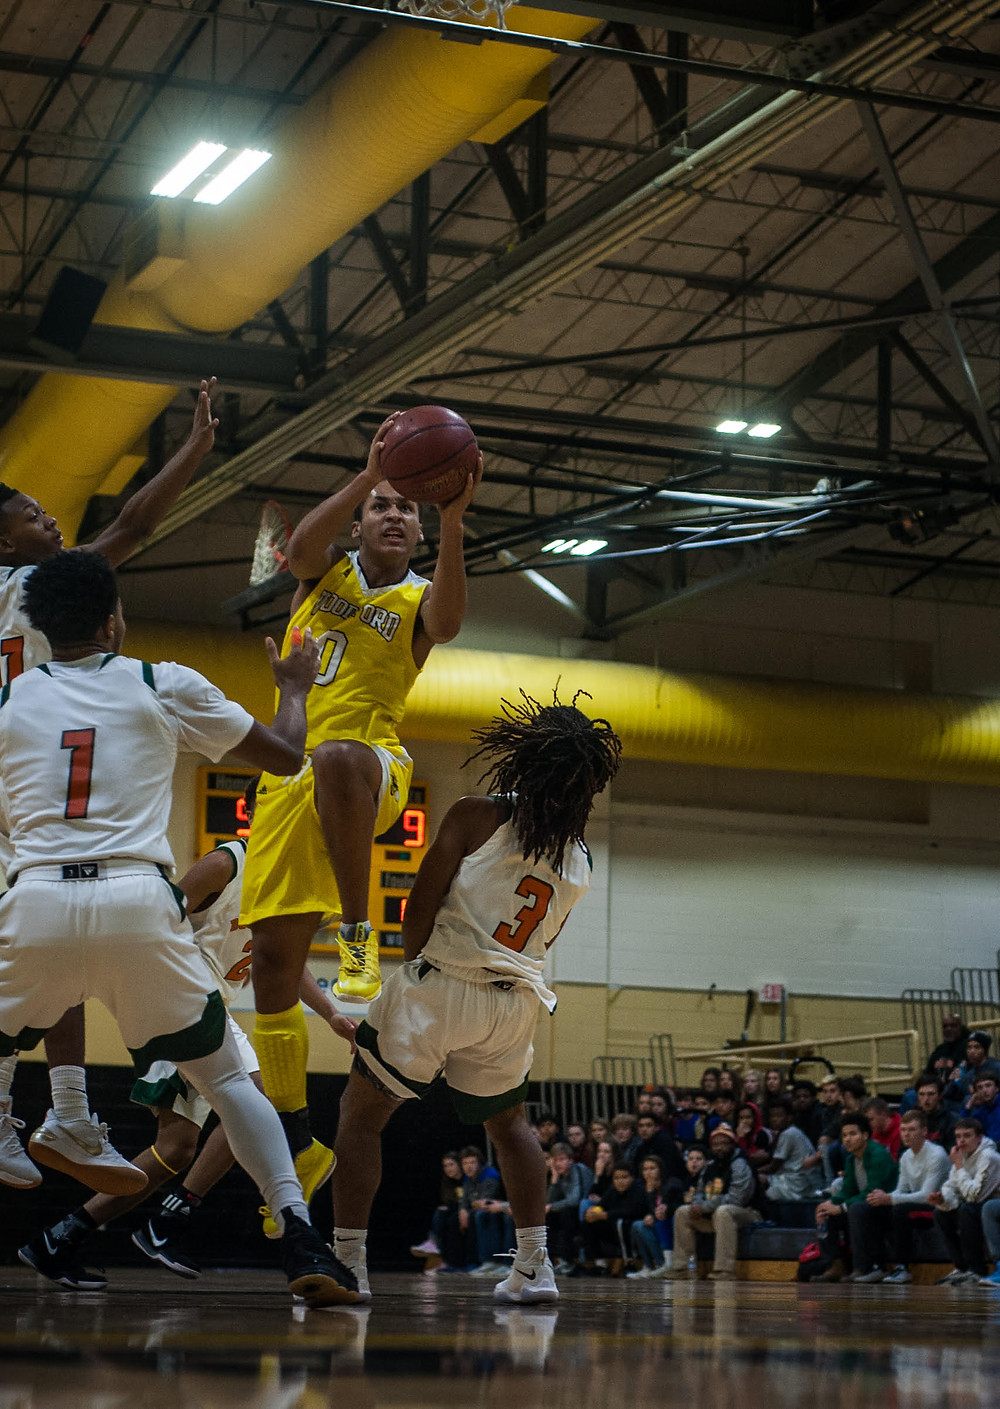 JUNIOR GUARD ANTHONY TABOR floats past a pair of Frederick Douglass High School defenders in the Jackets win on Dec. 20 in the Woodford County Invitational semi-final. (Photo by Bill Caine)